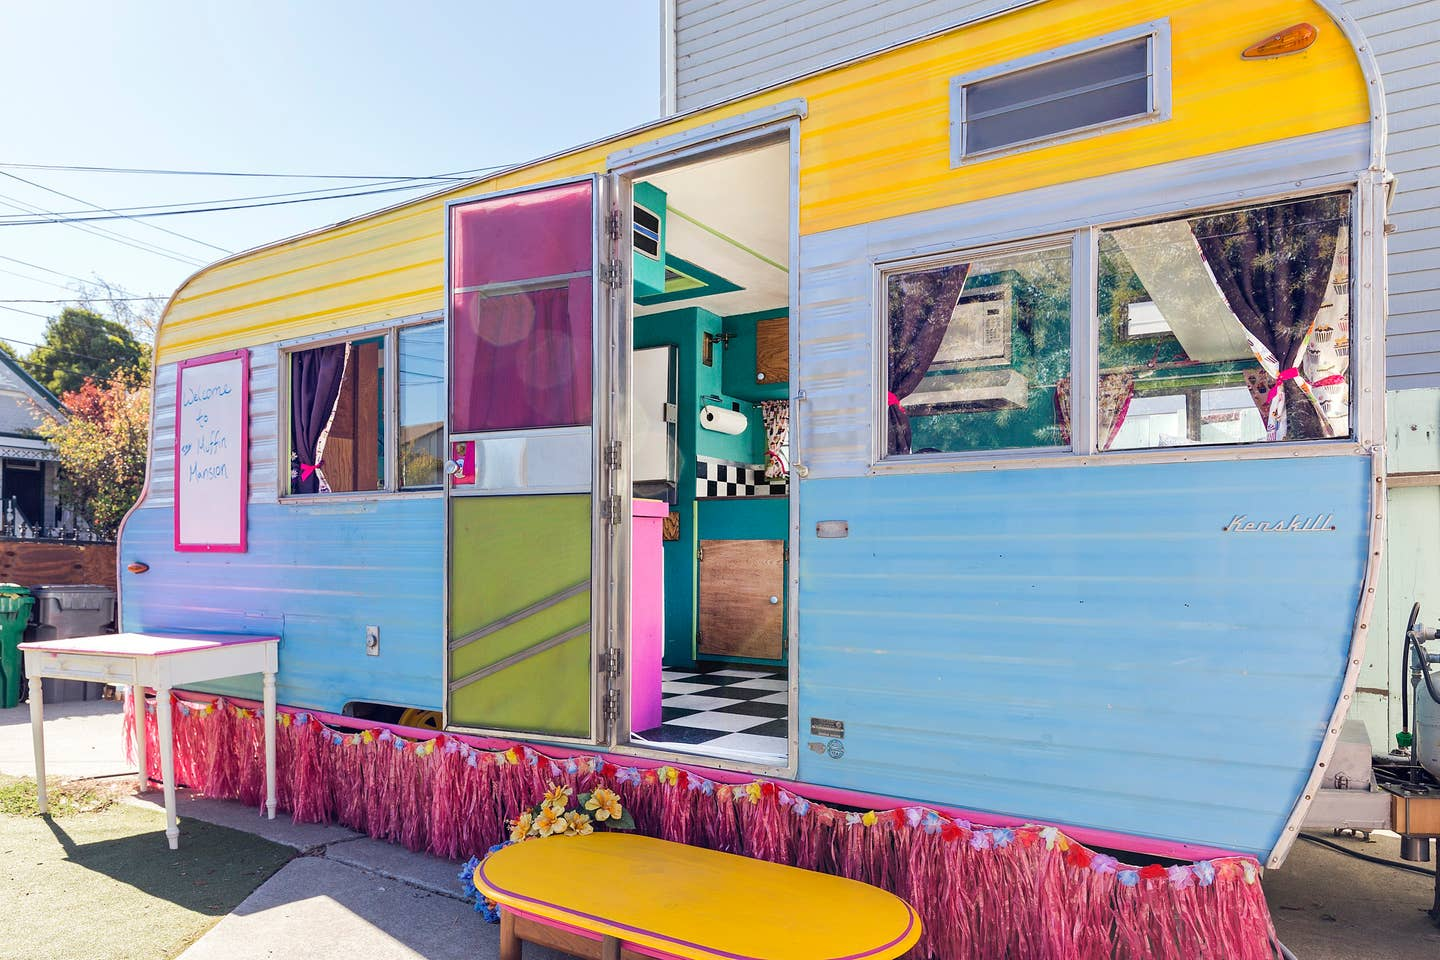 Most Unique USA Airbnbs vintage colorful caravan airstream painted exterior